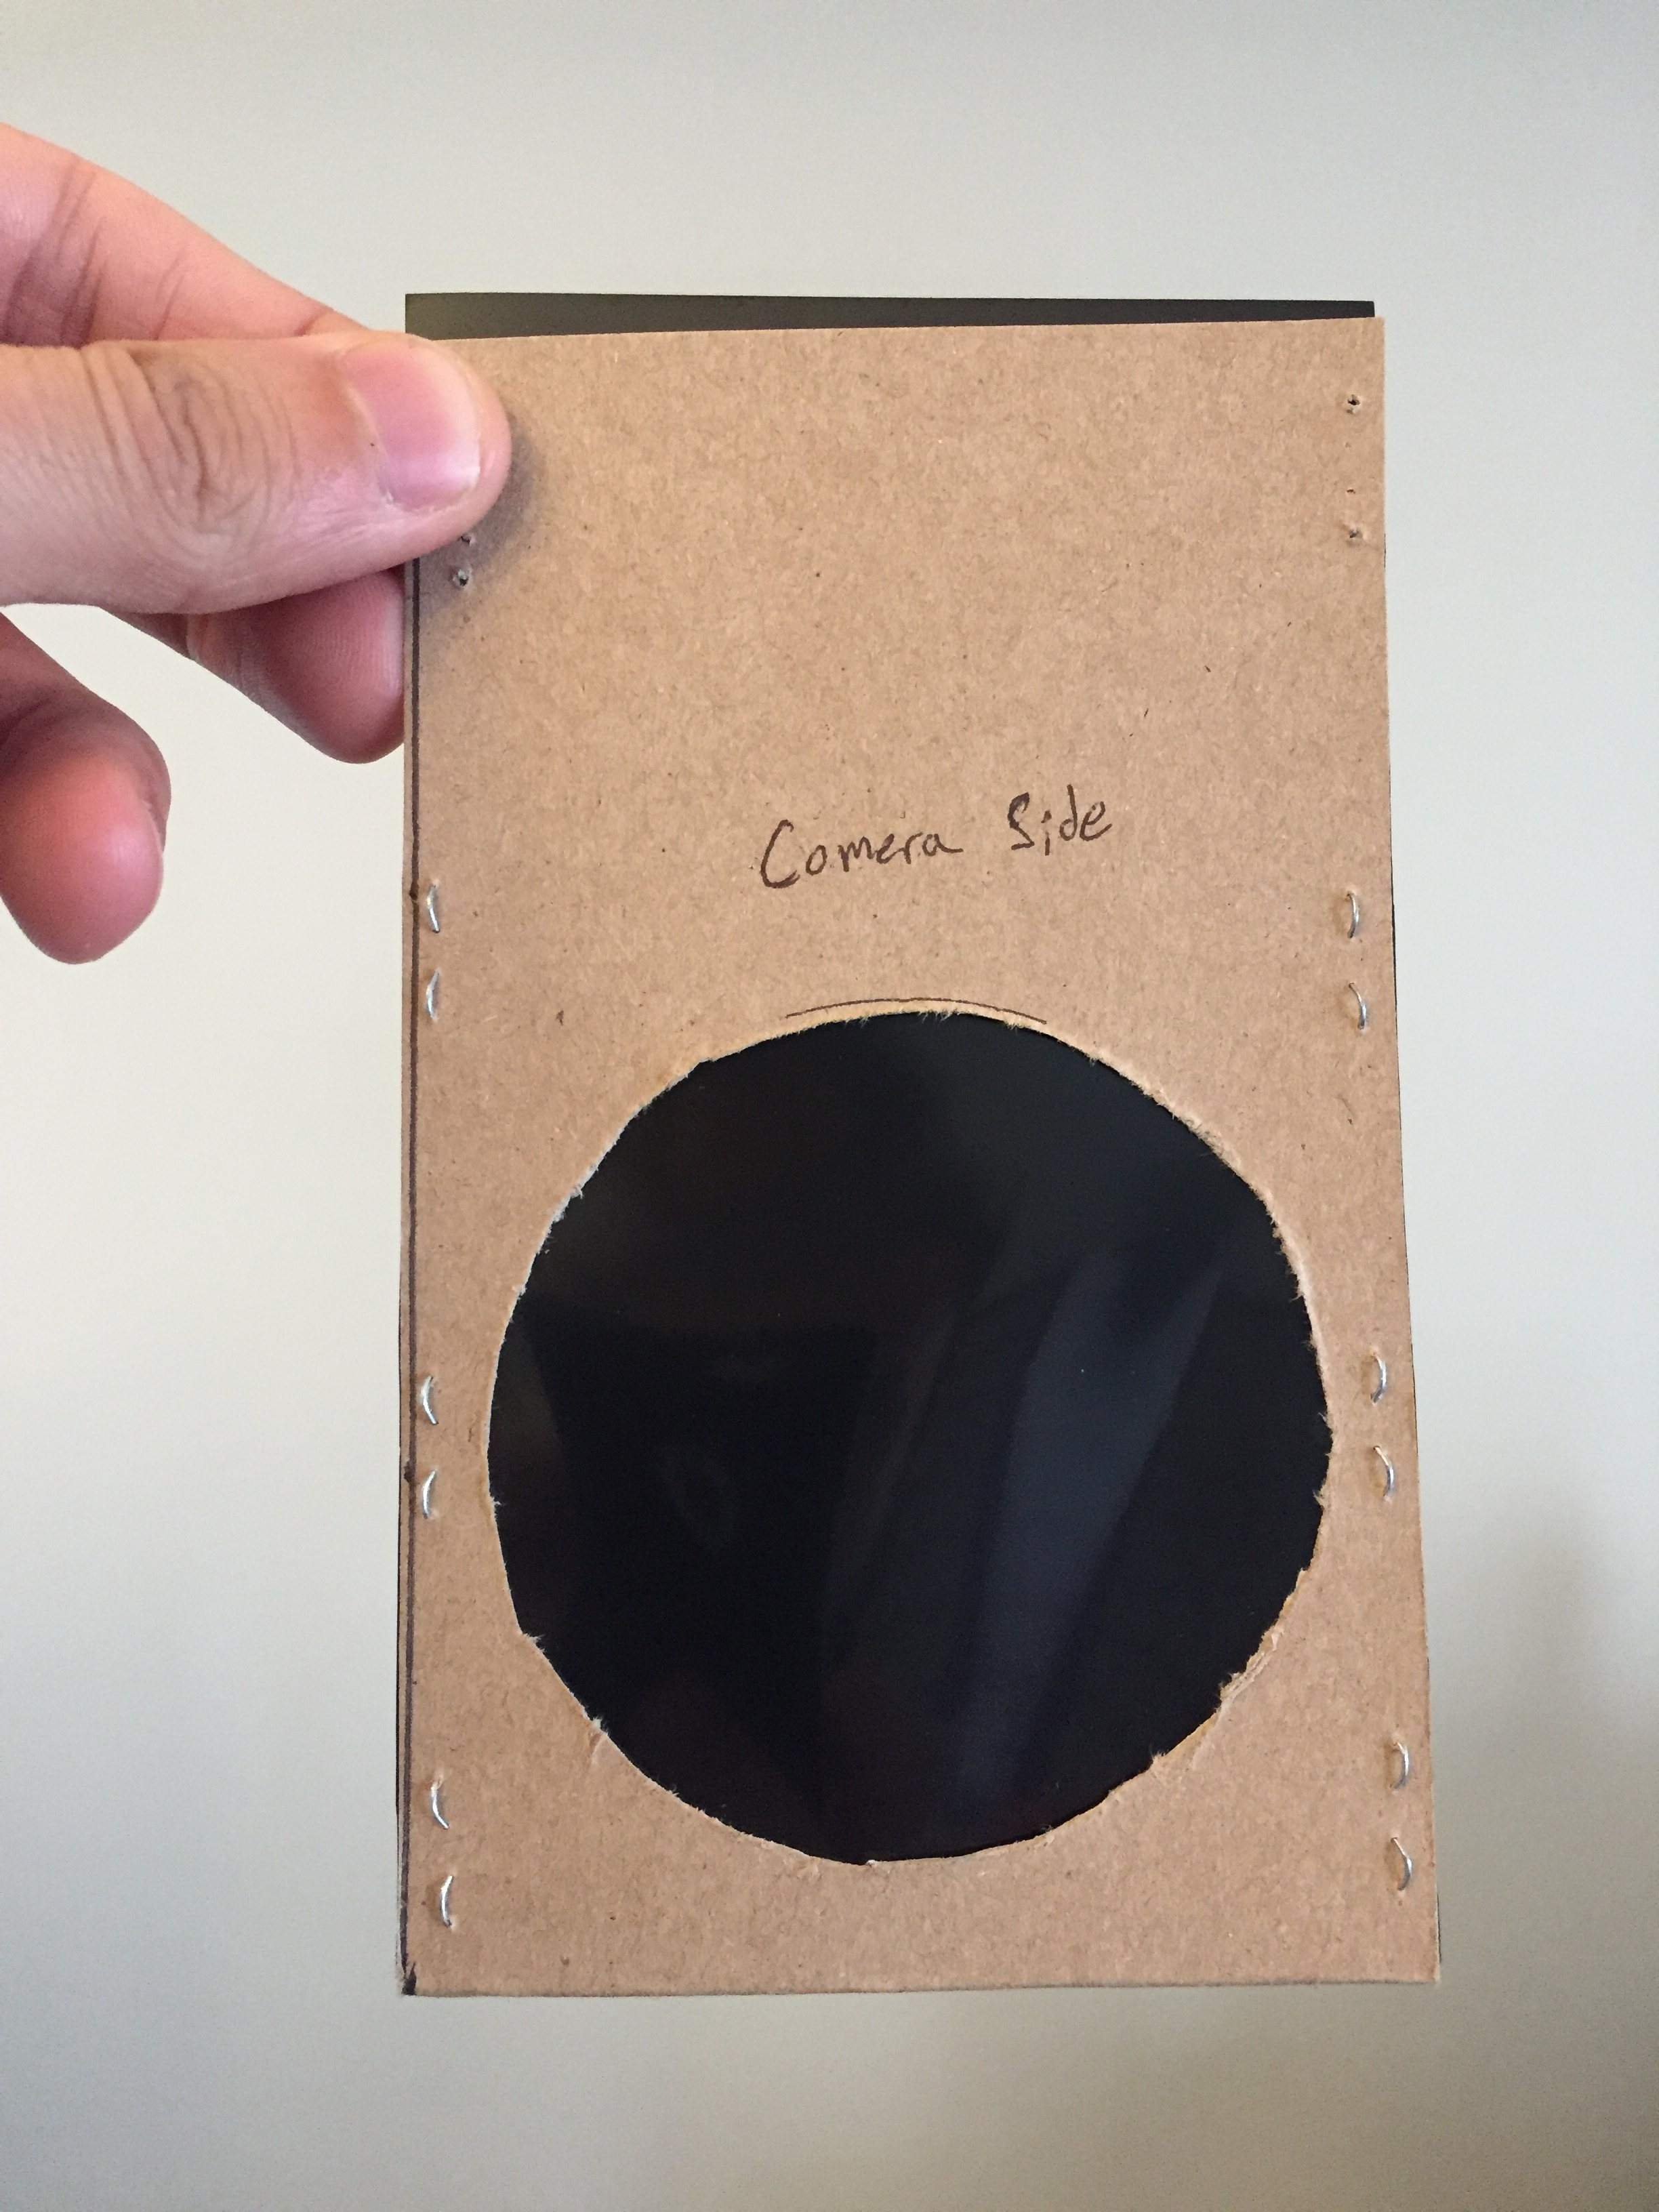 DIY Make Your Own Solar Filter Camera Side